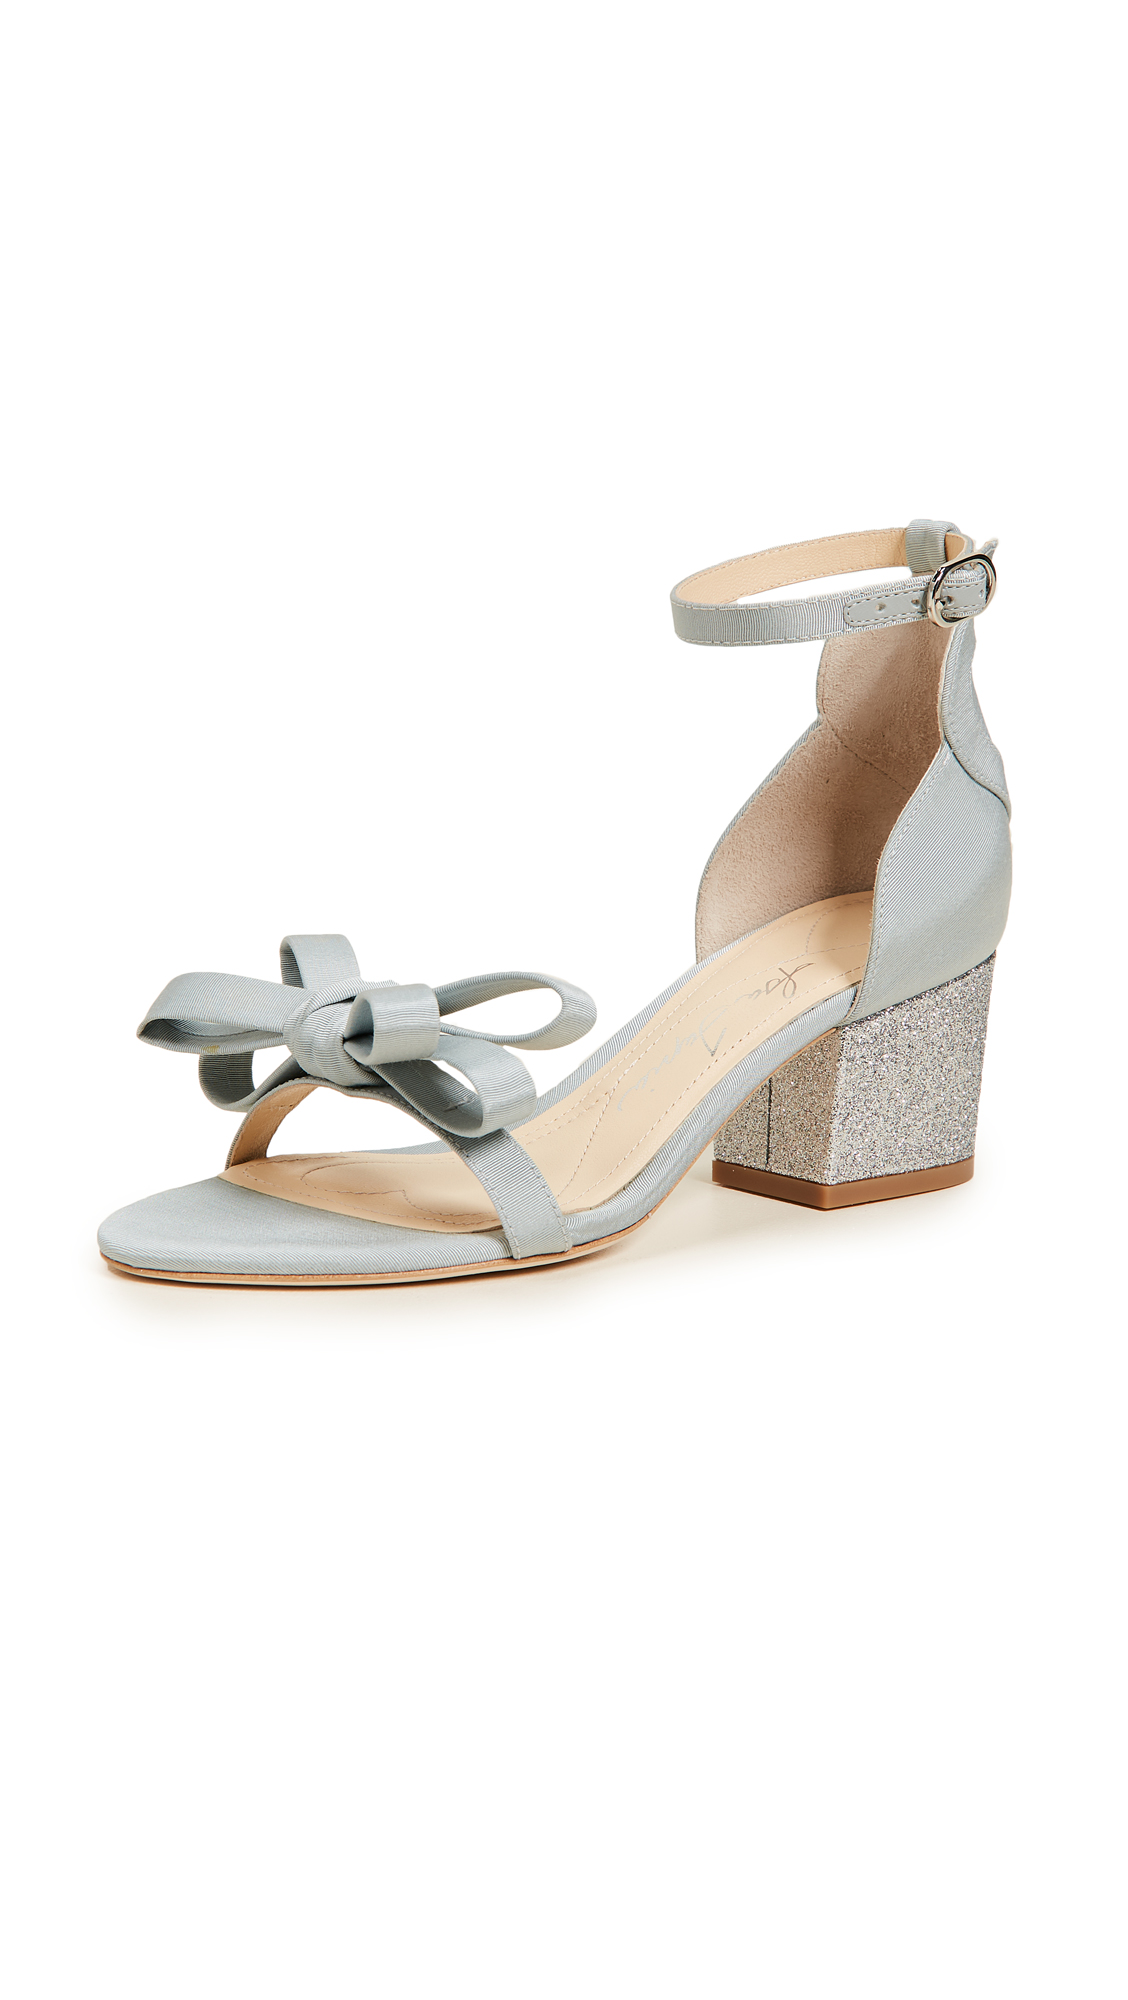 Isa Tapia Charlotte Sandals - Something Blue/Silver